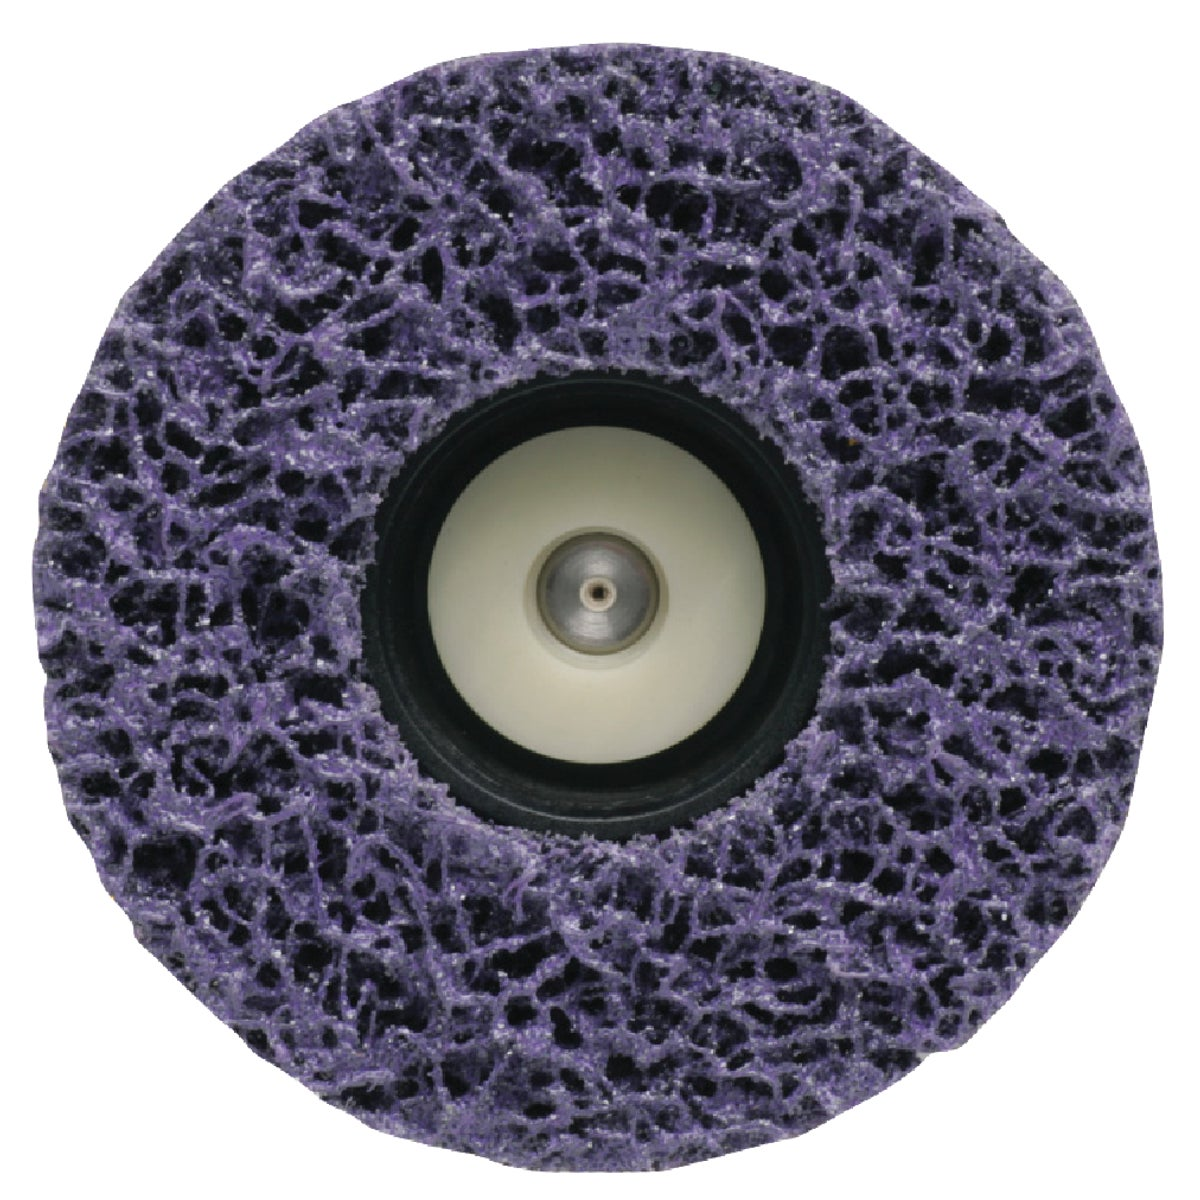 PAINT EATER REPLC DISC